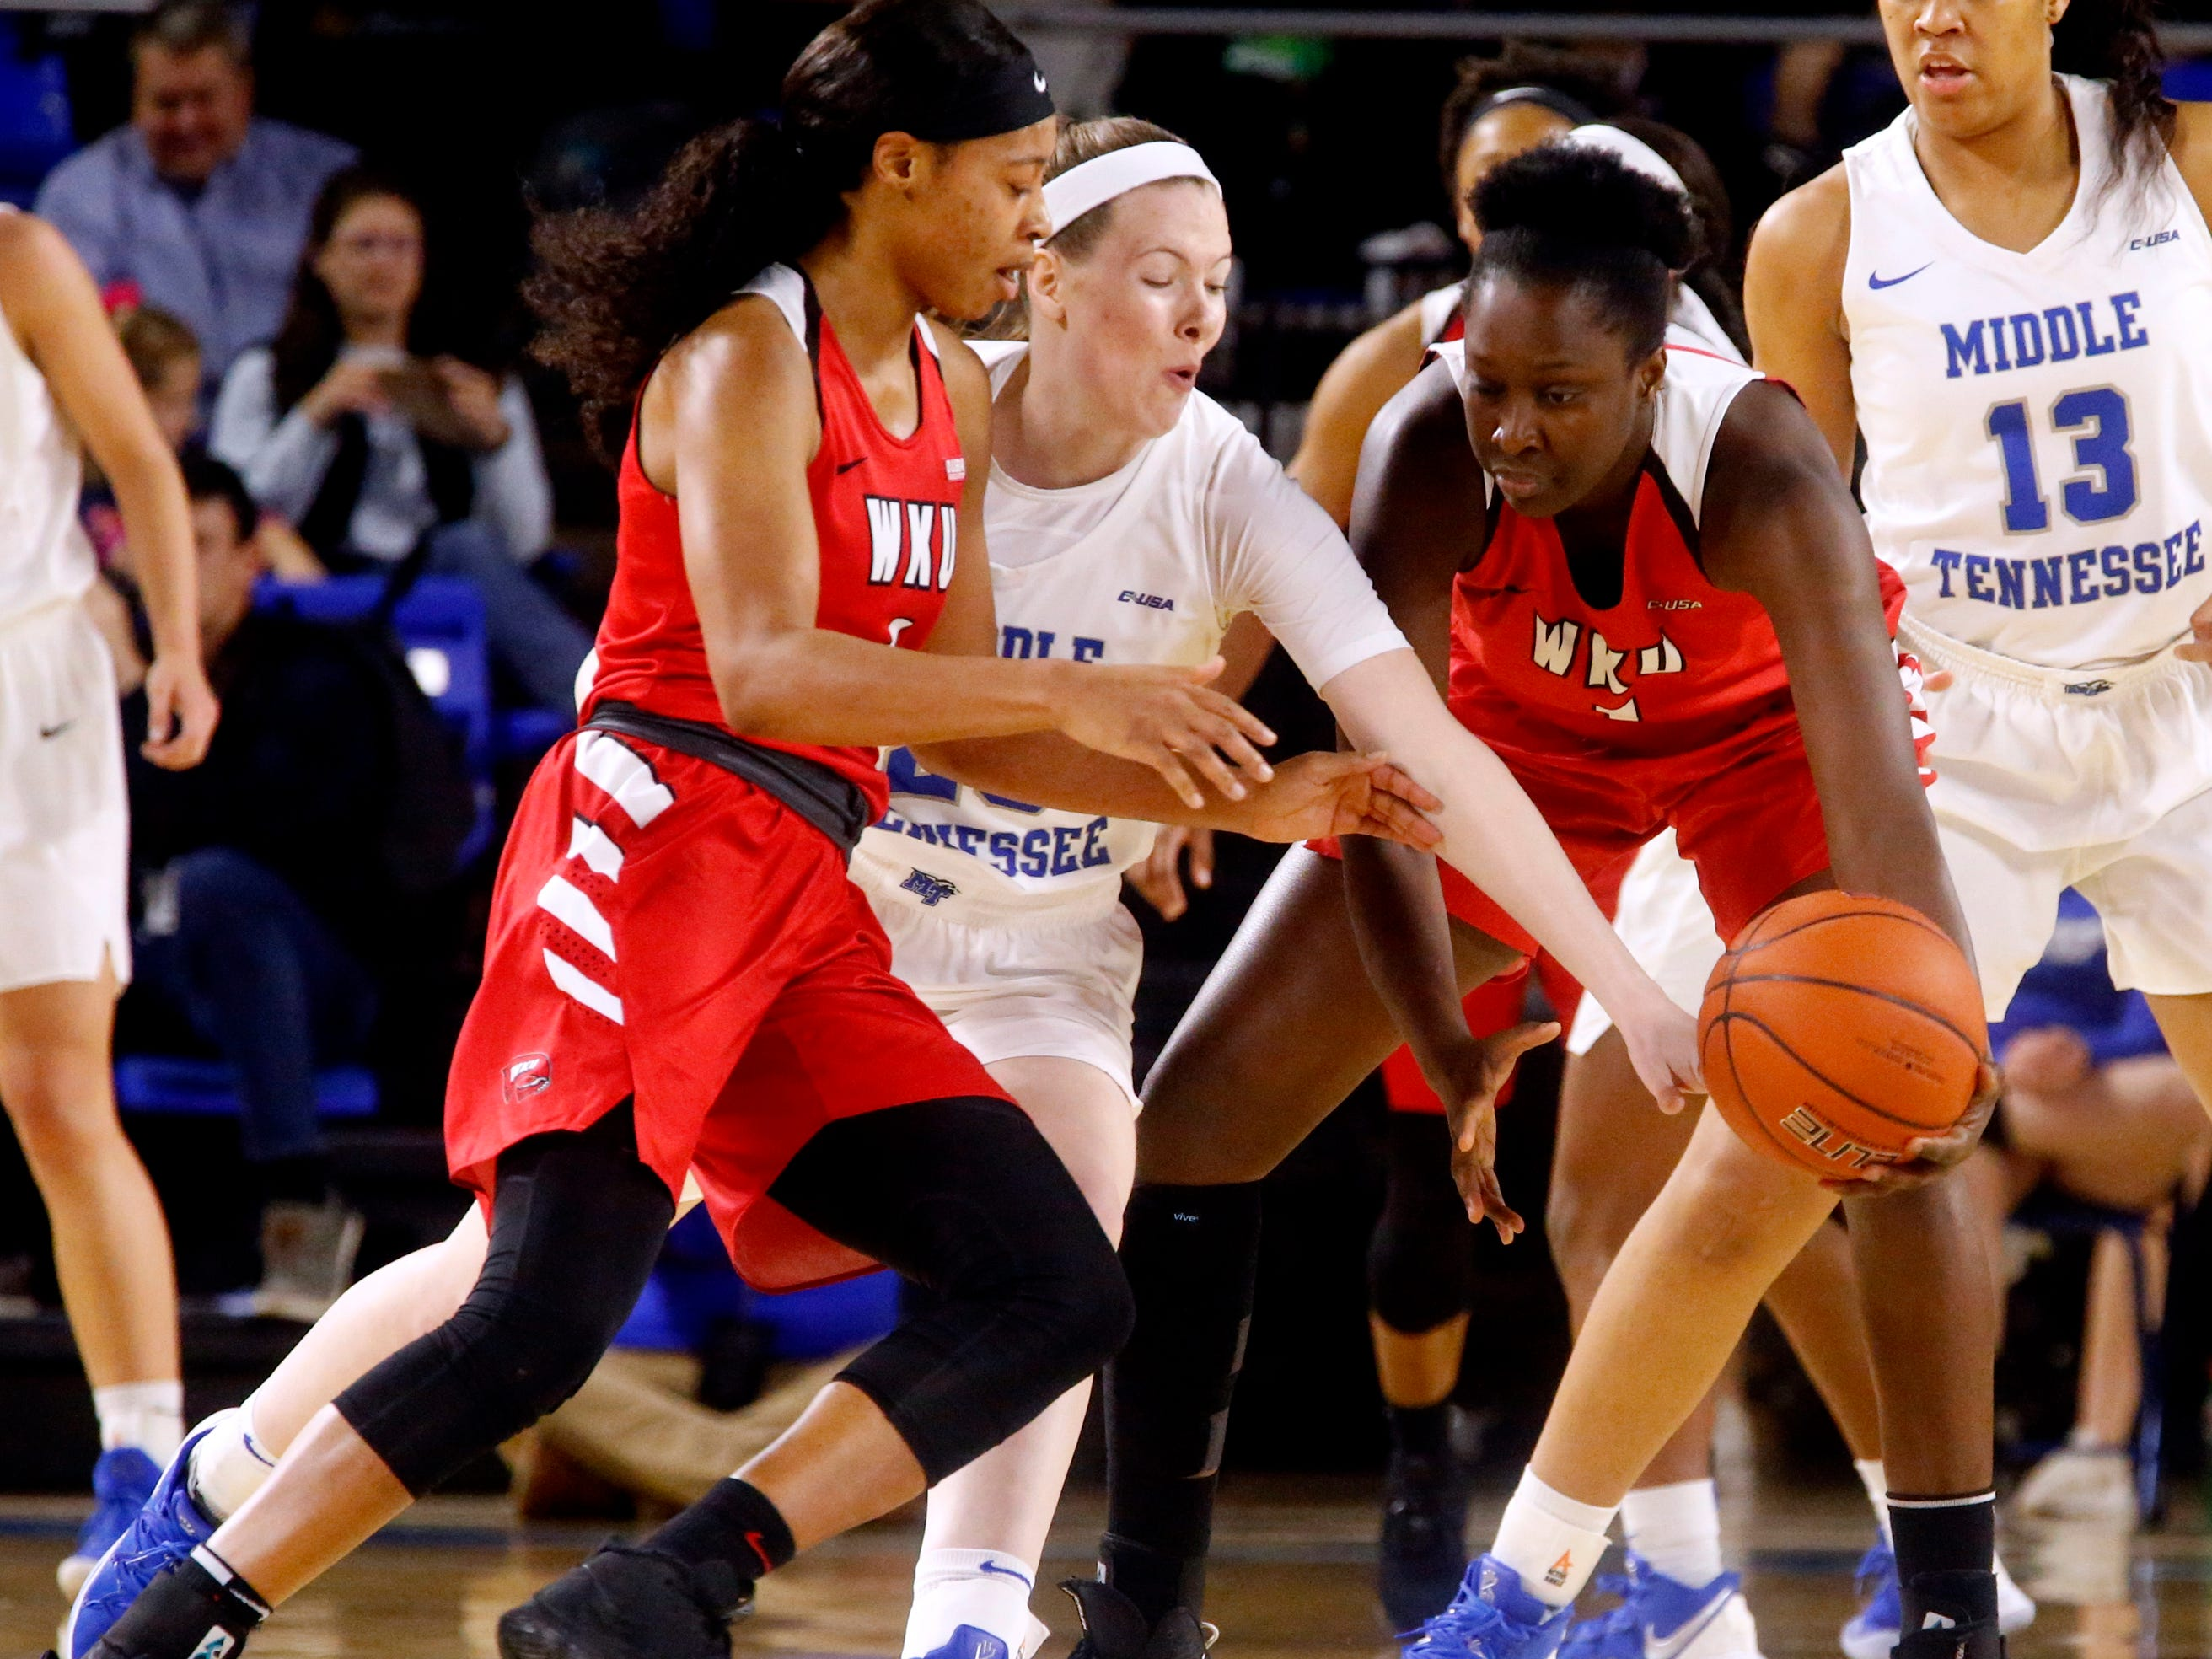 MTSU's guard Alexis Whittington (23) tries t get the ball away from Western's forward Dee Givens (4) and Western's forward Arame Niang (1) on Thursday, Feb. 14, 2019.